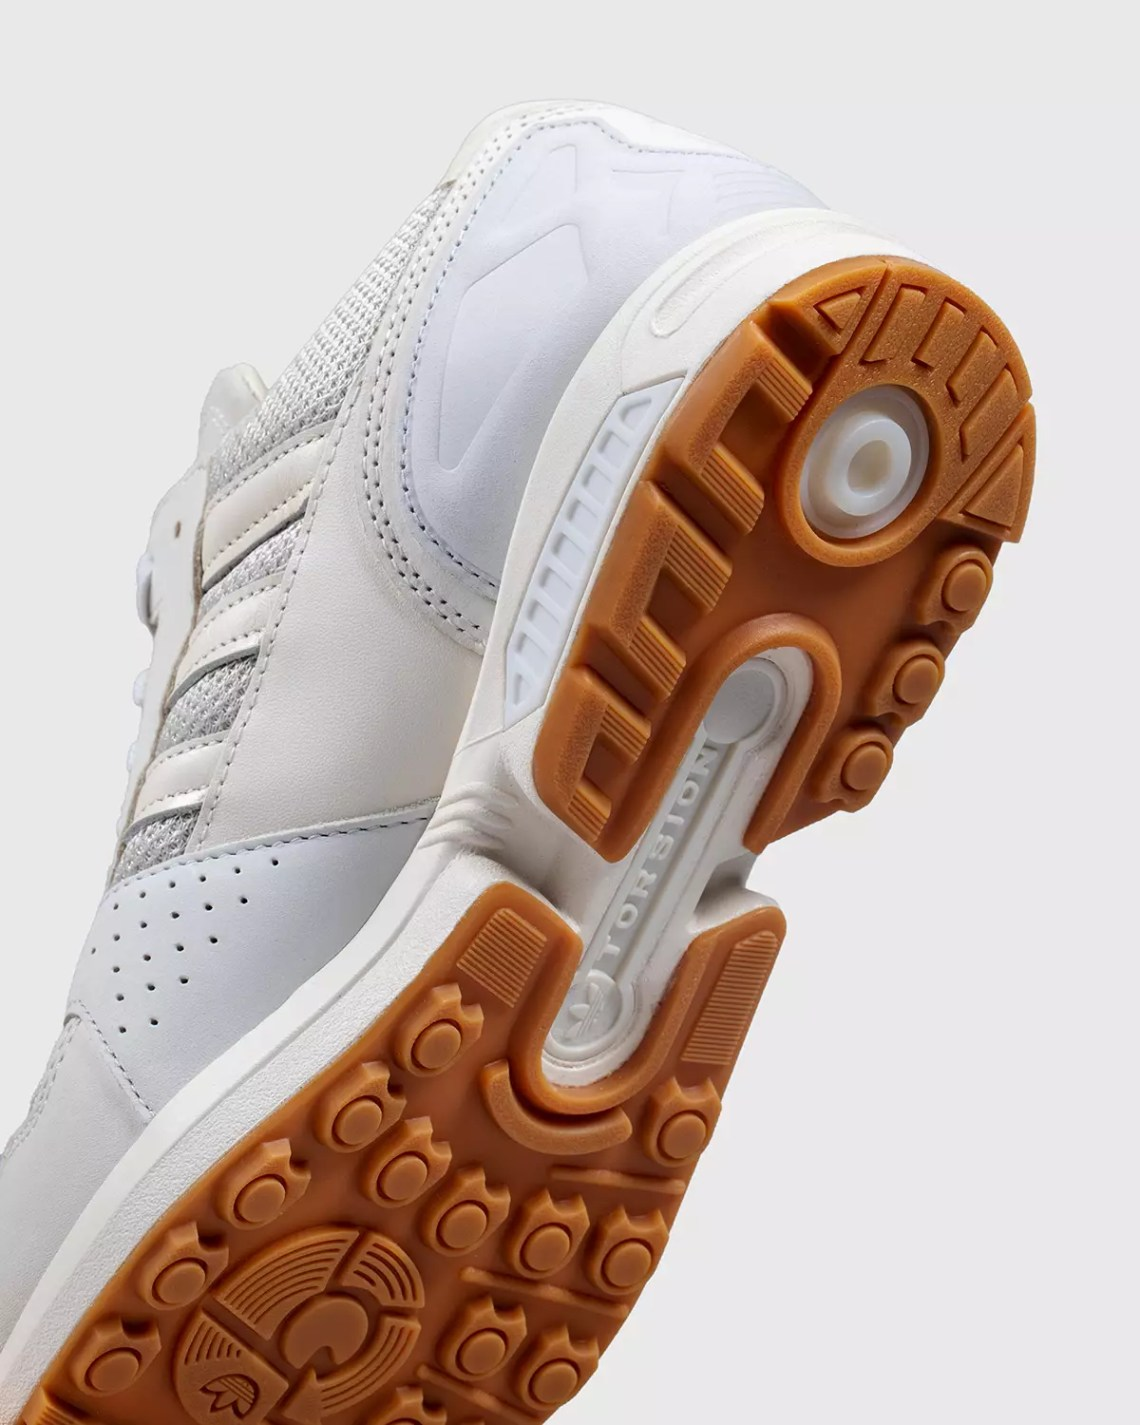 """Our adidas ZX 8000 """"Qualität"""" Is All About Craftsmanship"""